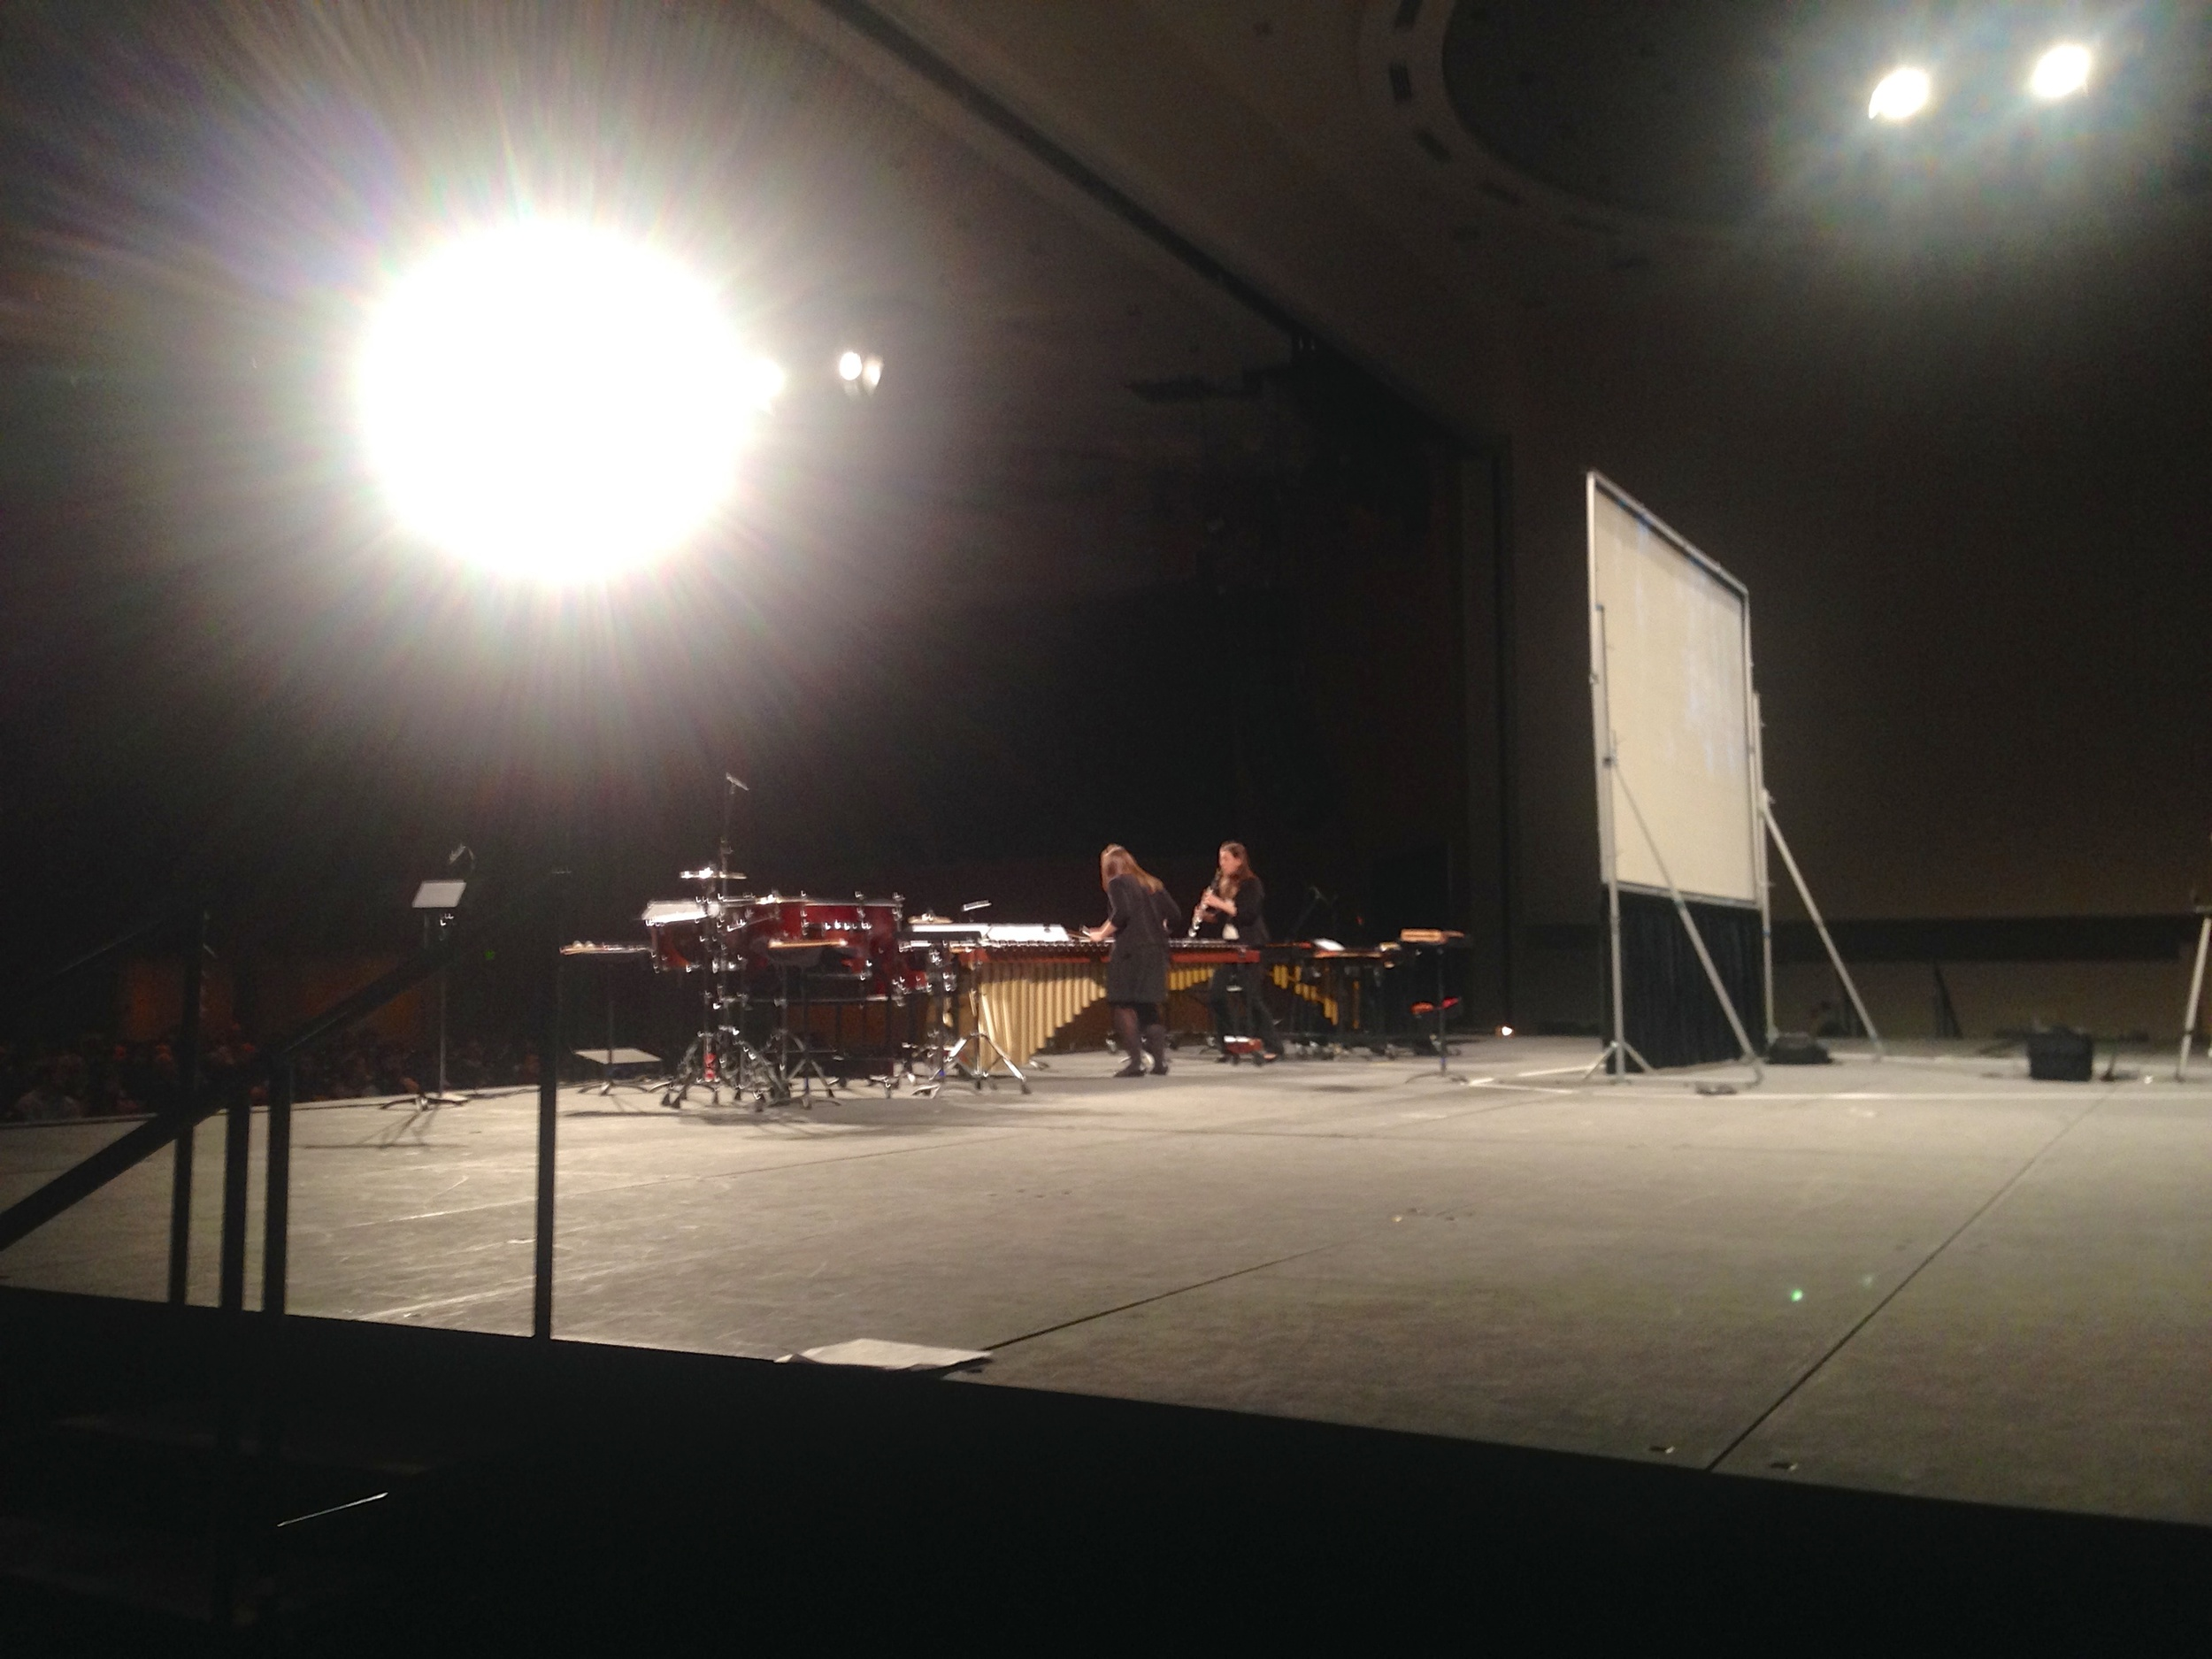 2013-11-14 12-30-55 Clone duo on the PASIC stage.jpg